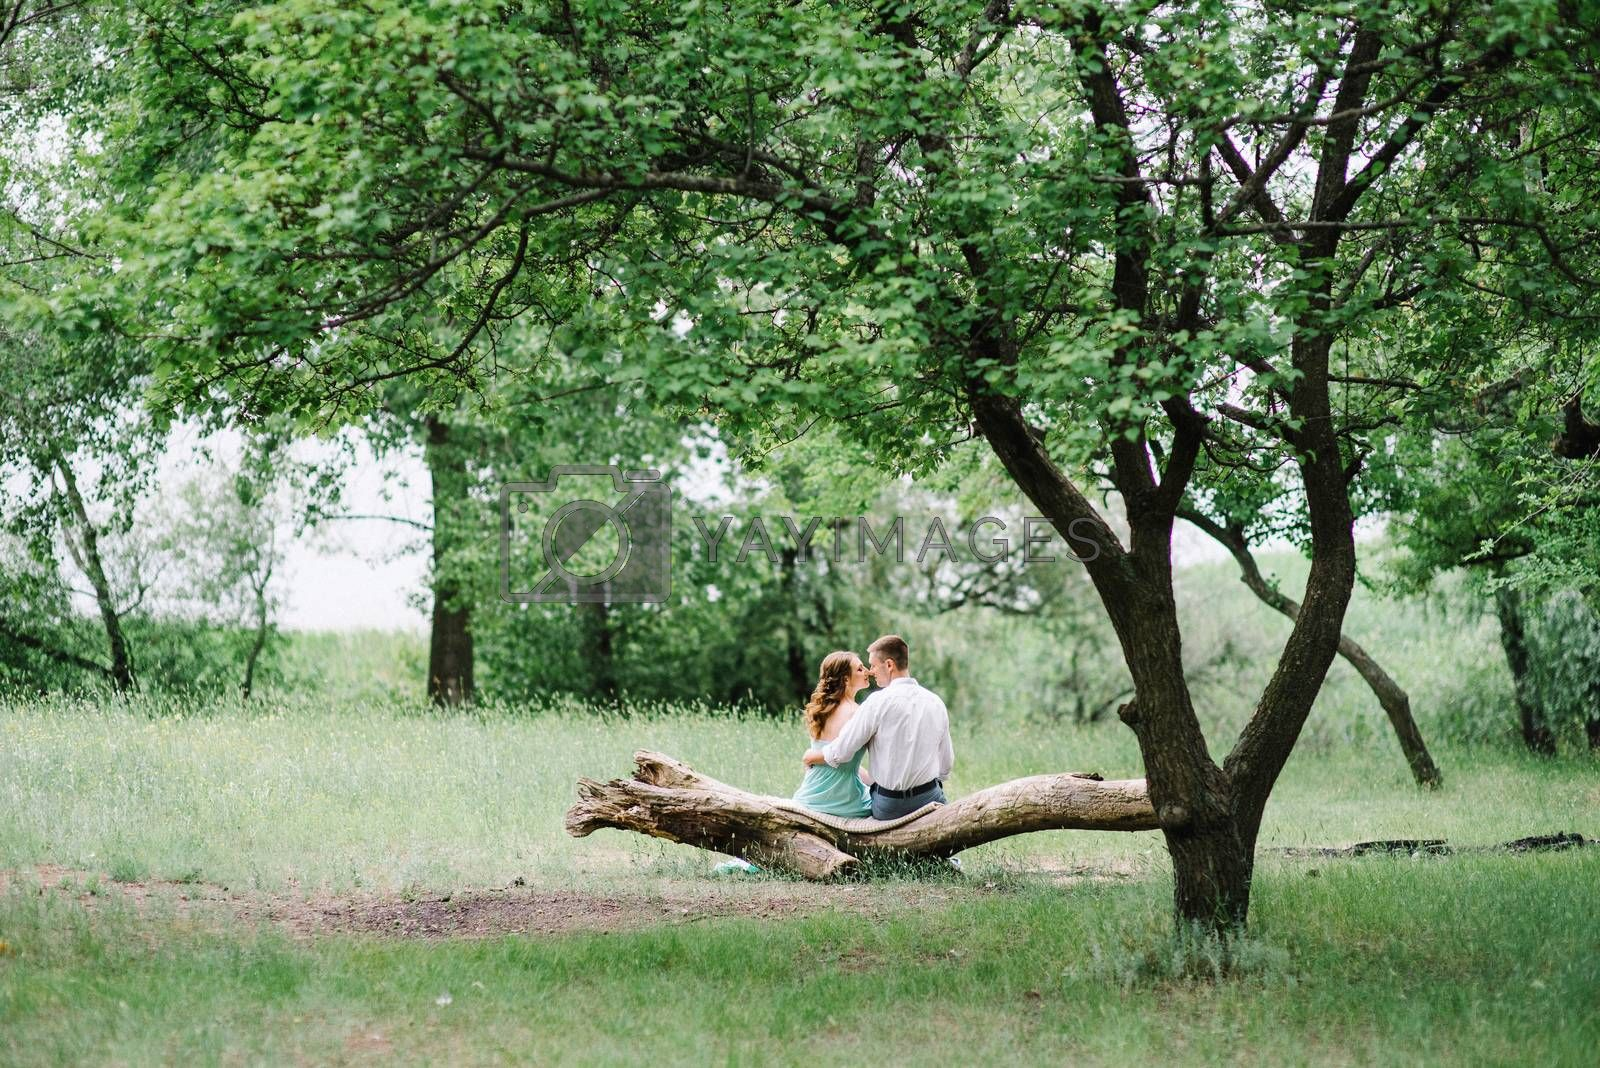 happy guy in a white shirt and a girl in a turquoise dress, the bride and groom are walking in the forest park